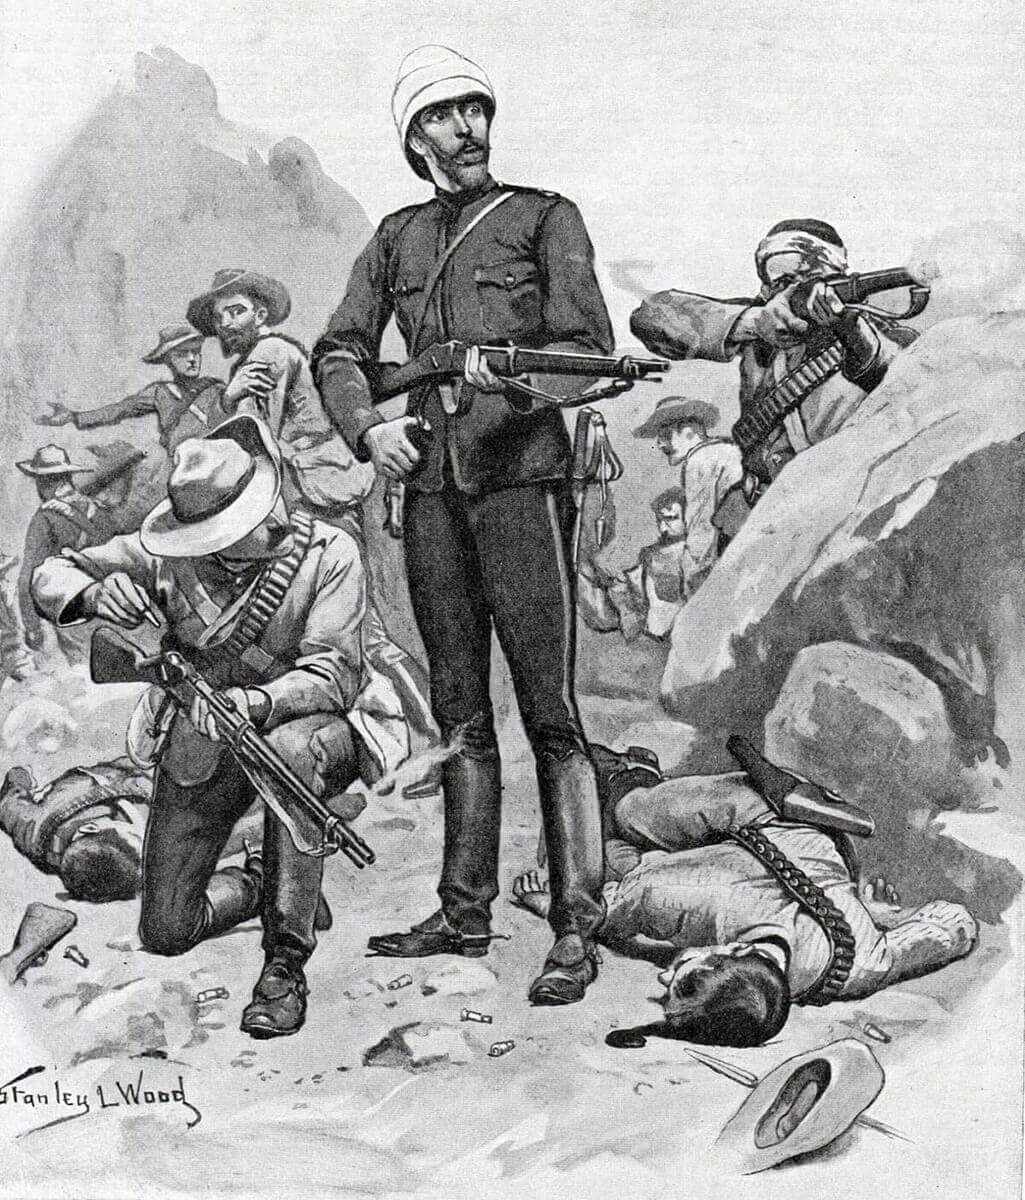 Colonel Buller and his men on Hlobane Mountain: Battle of Khambula on 29th March 1879 in the Zulu War: picture by Stanley Wood